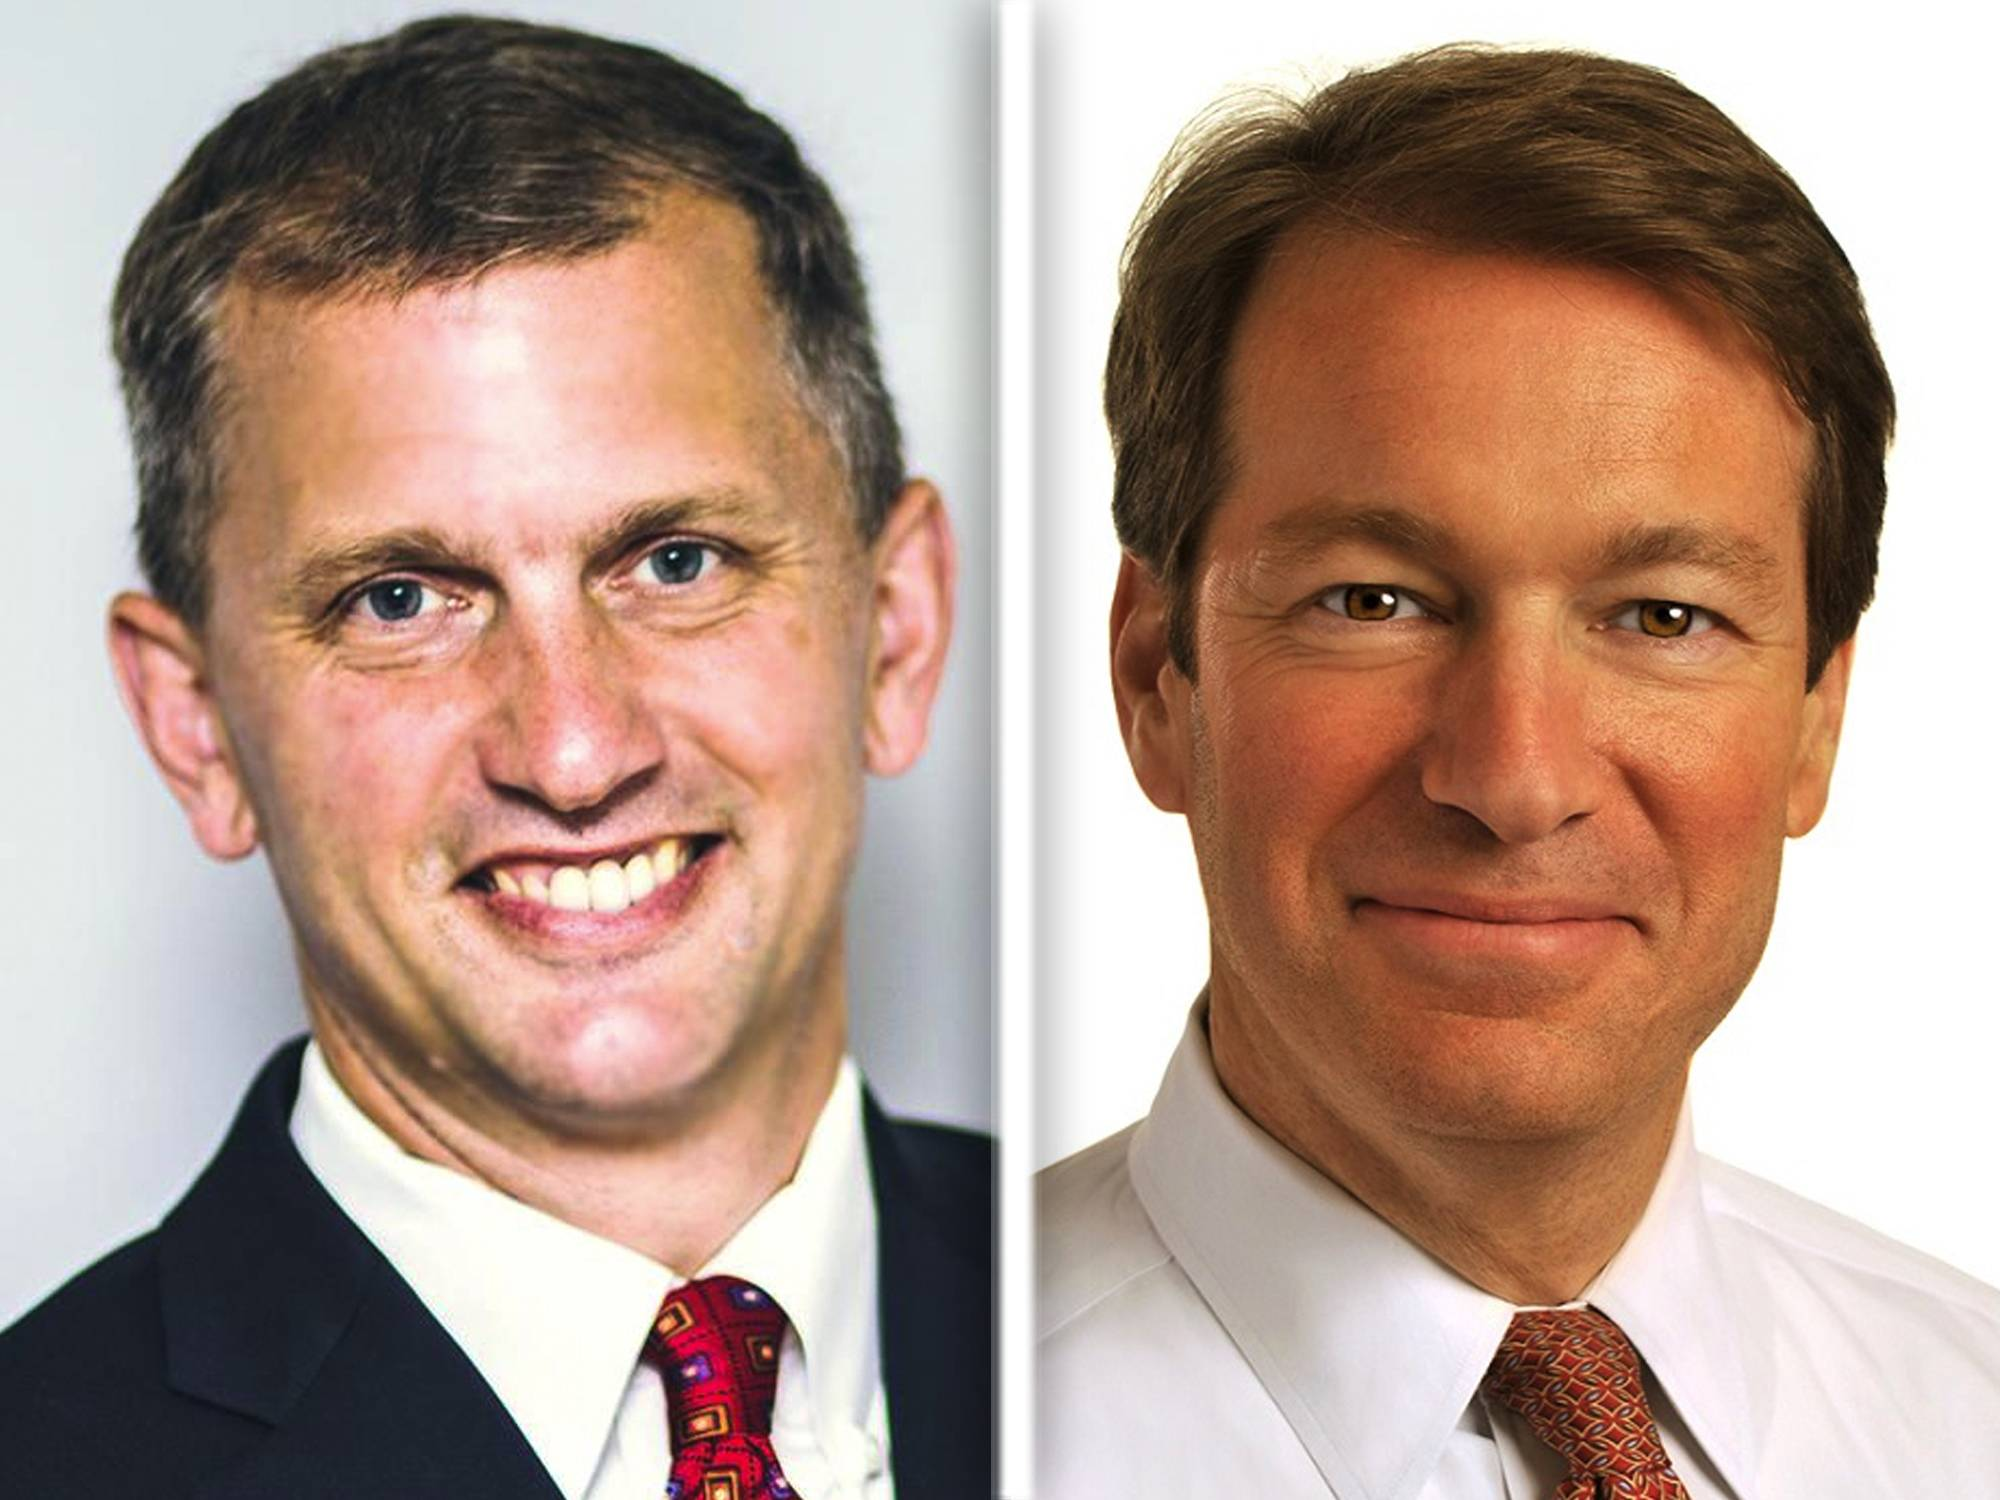 Candidates for U.S. Rep. in the 6th District, Democratic challenger Sean Casten and Republican incumbent Peter Roskam, took turns shifting a moderator's questions toward their talking points and fact checks Monday night as they met for their final debate before the Nov. 6 election.